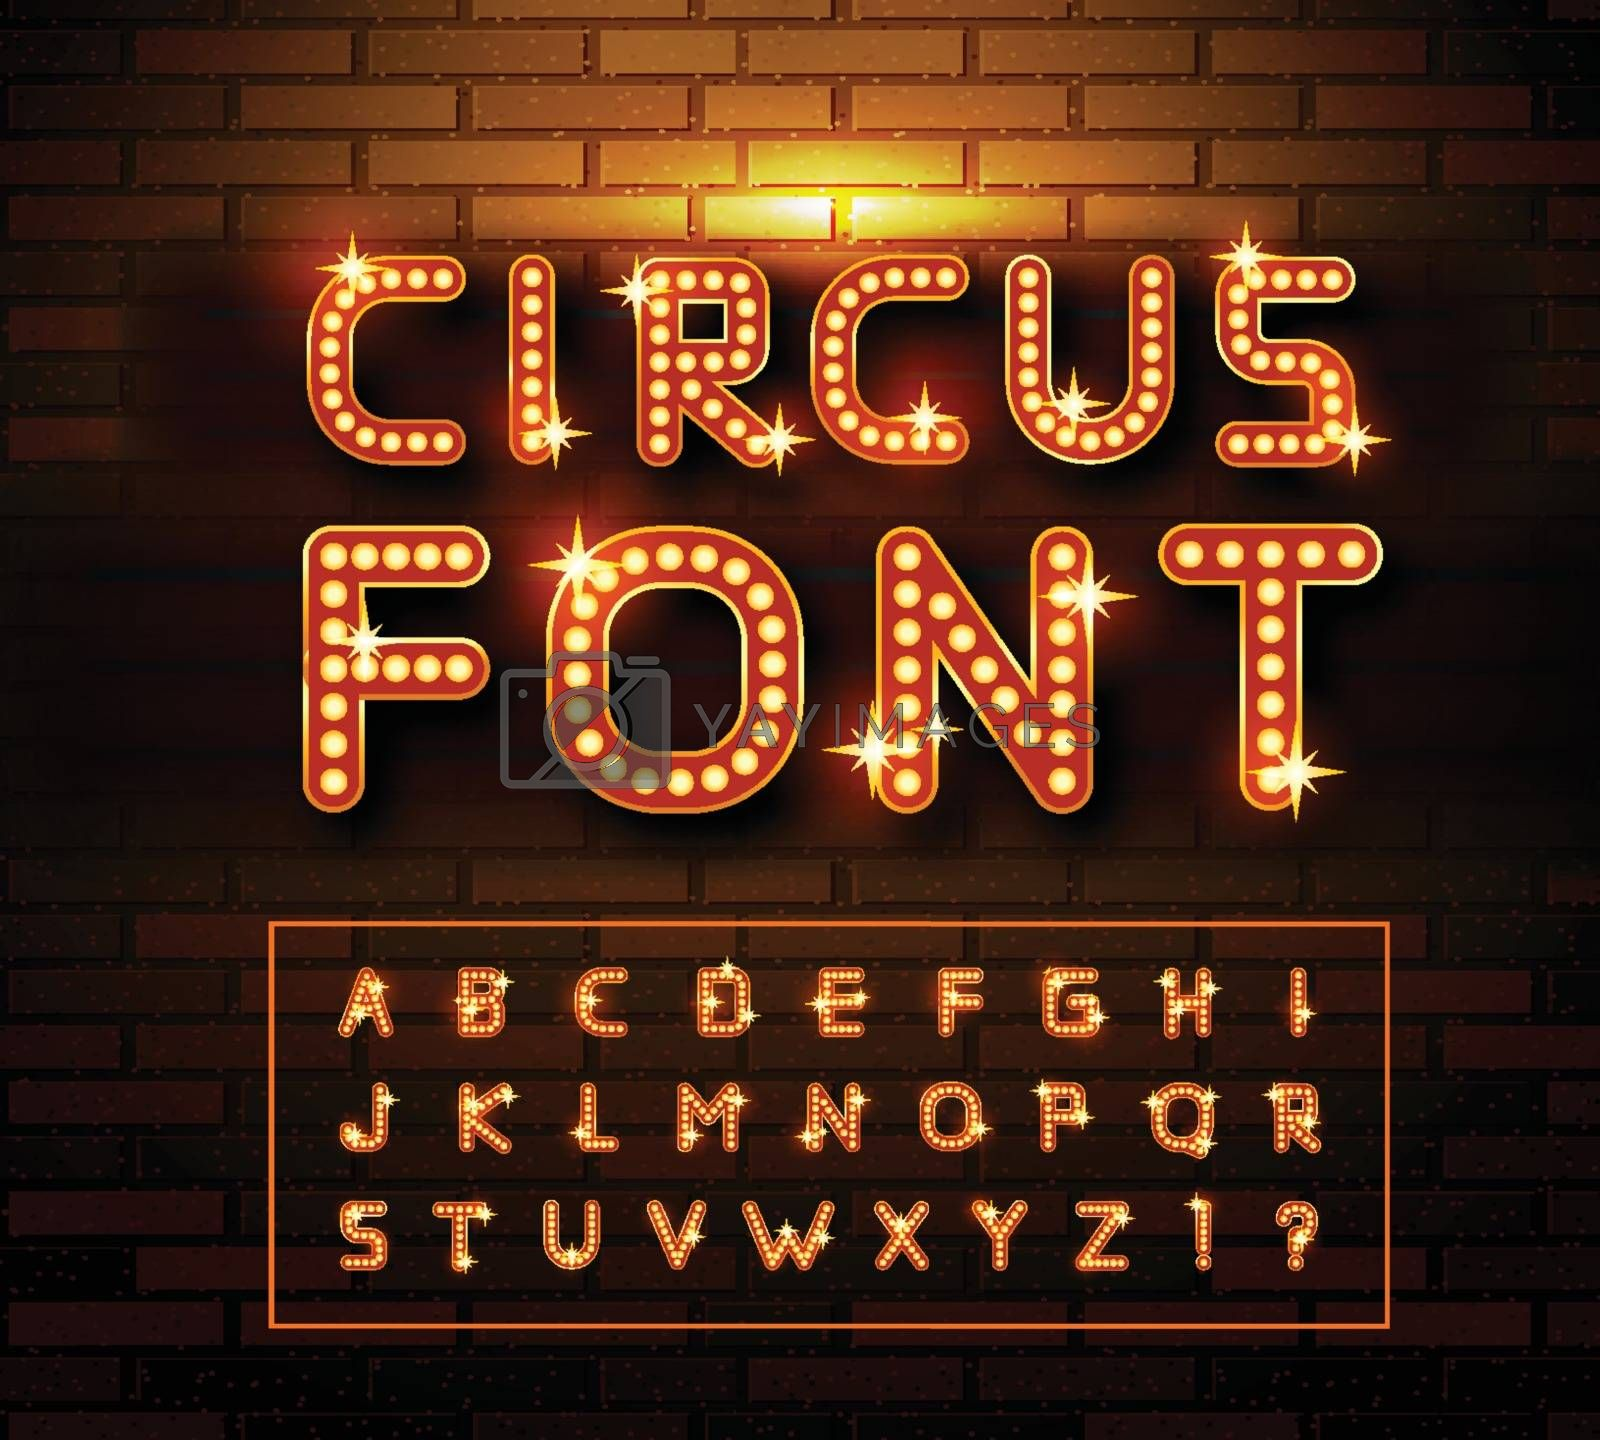 Circus marquee fonts on brick wall background. Vector by sermax55